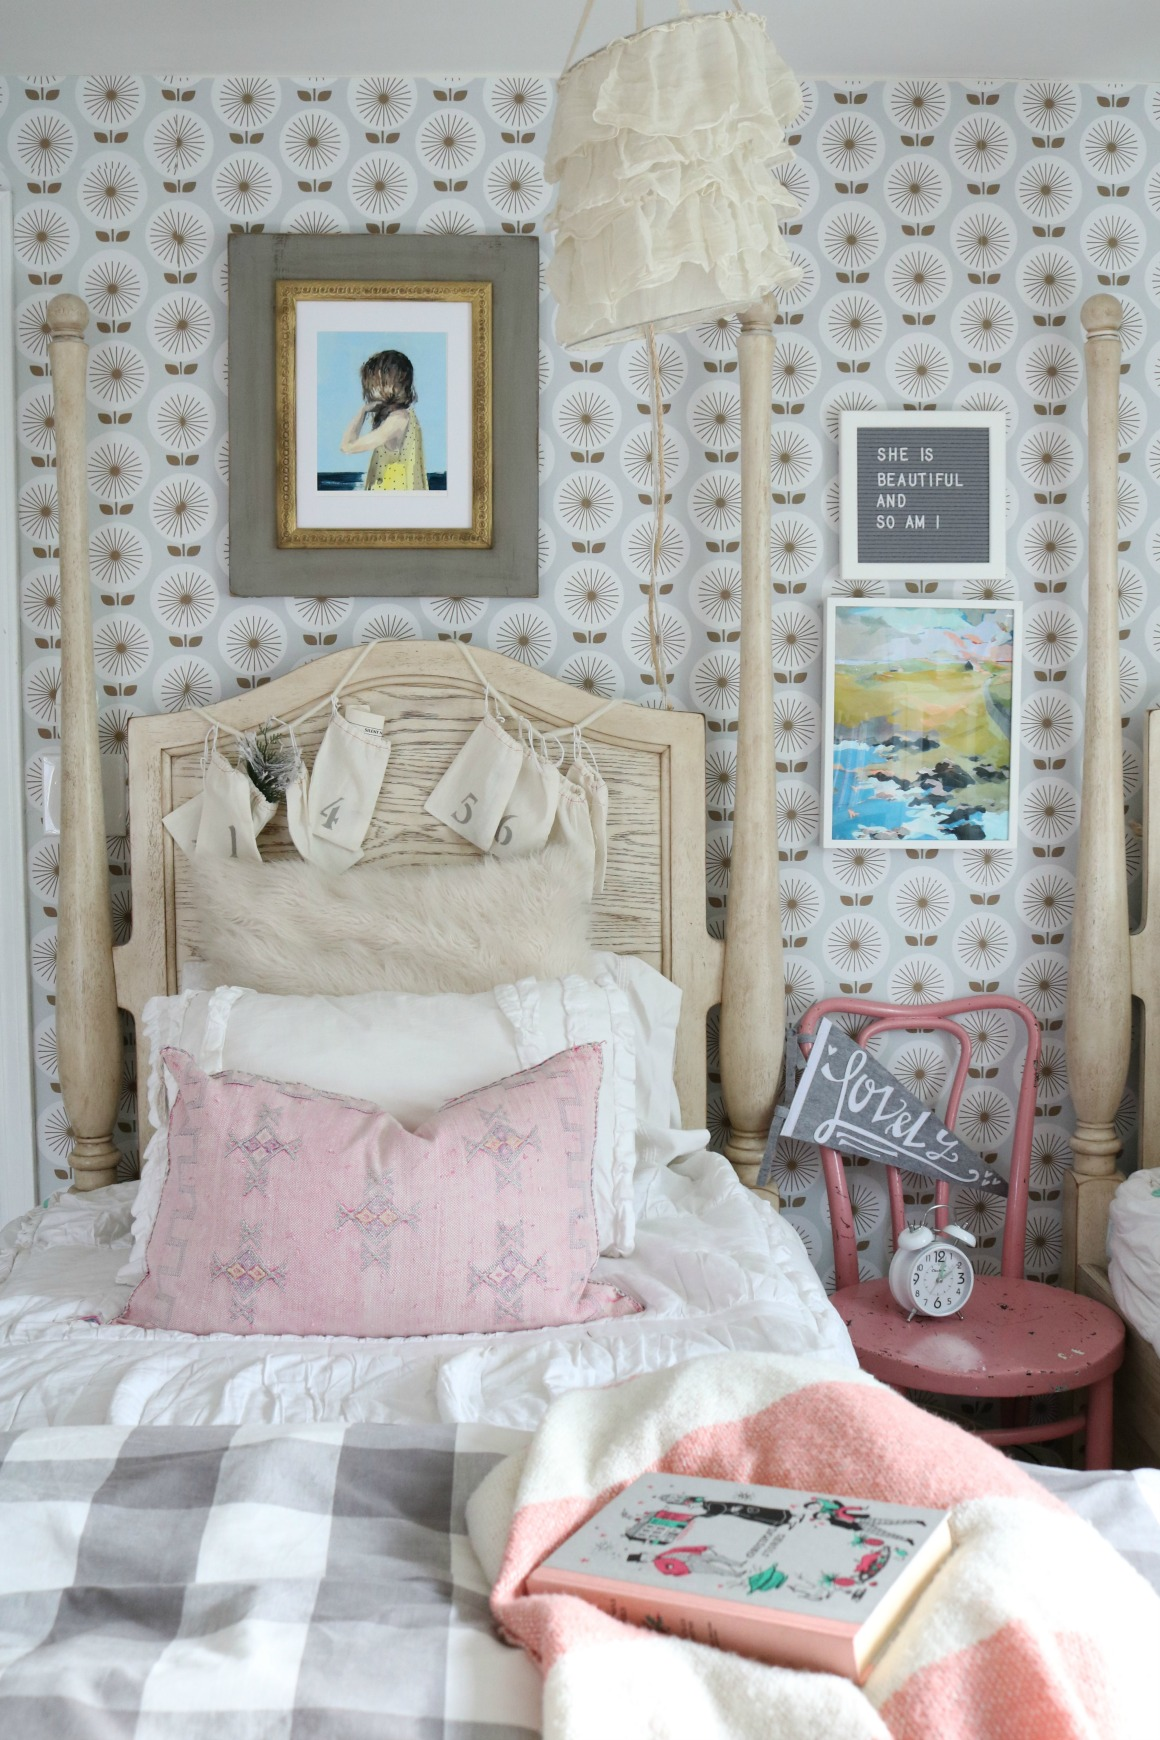 Christmas Decor in a Small Cape- Girls Shared Bedroom 0455